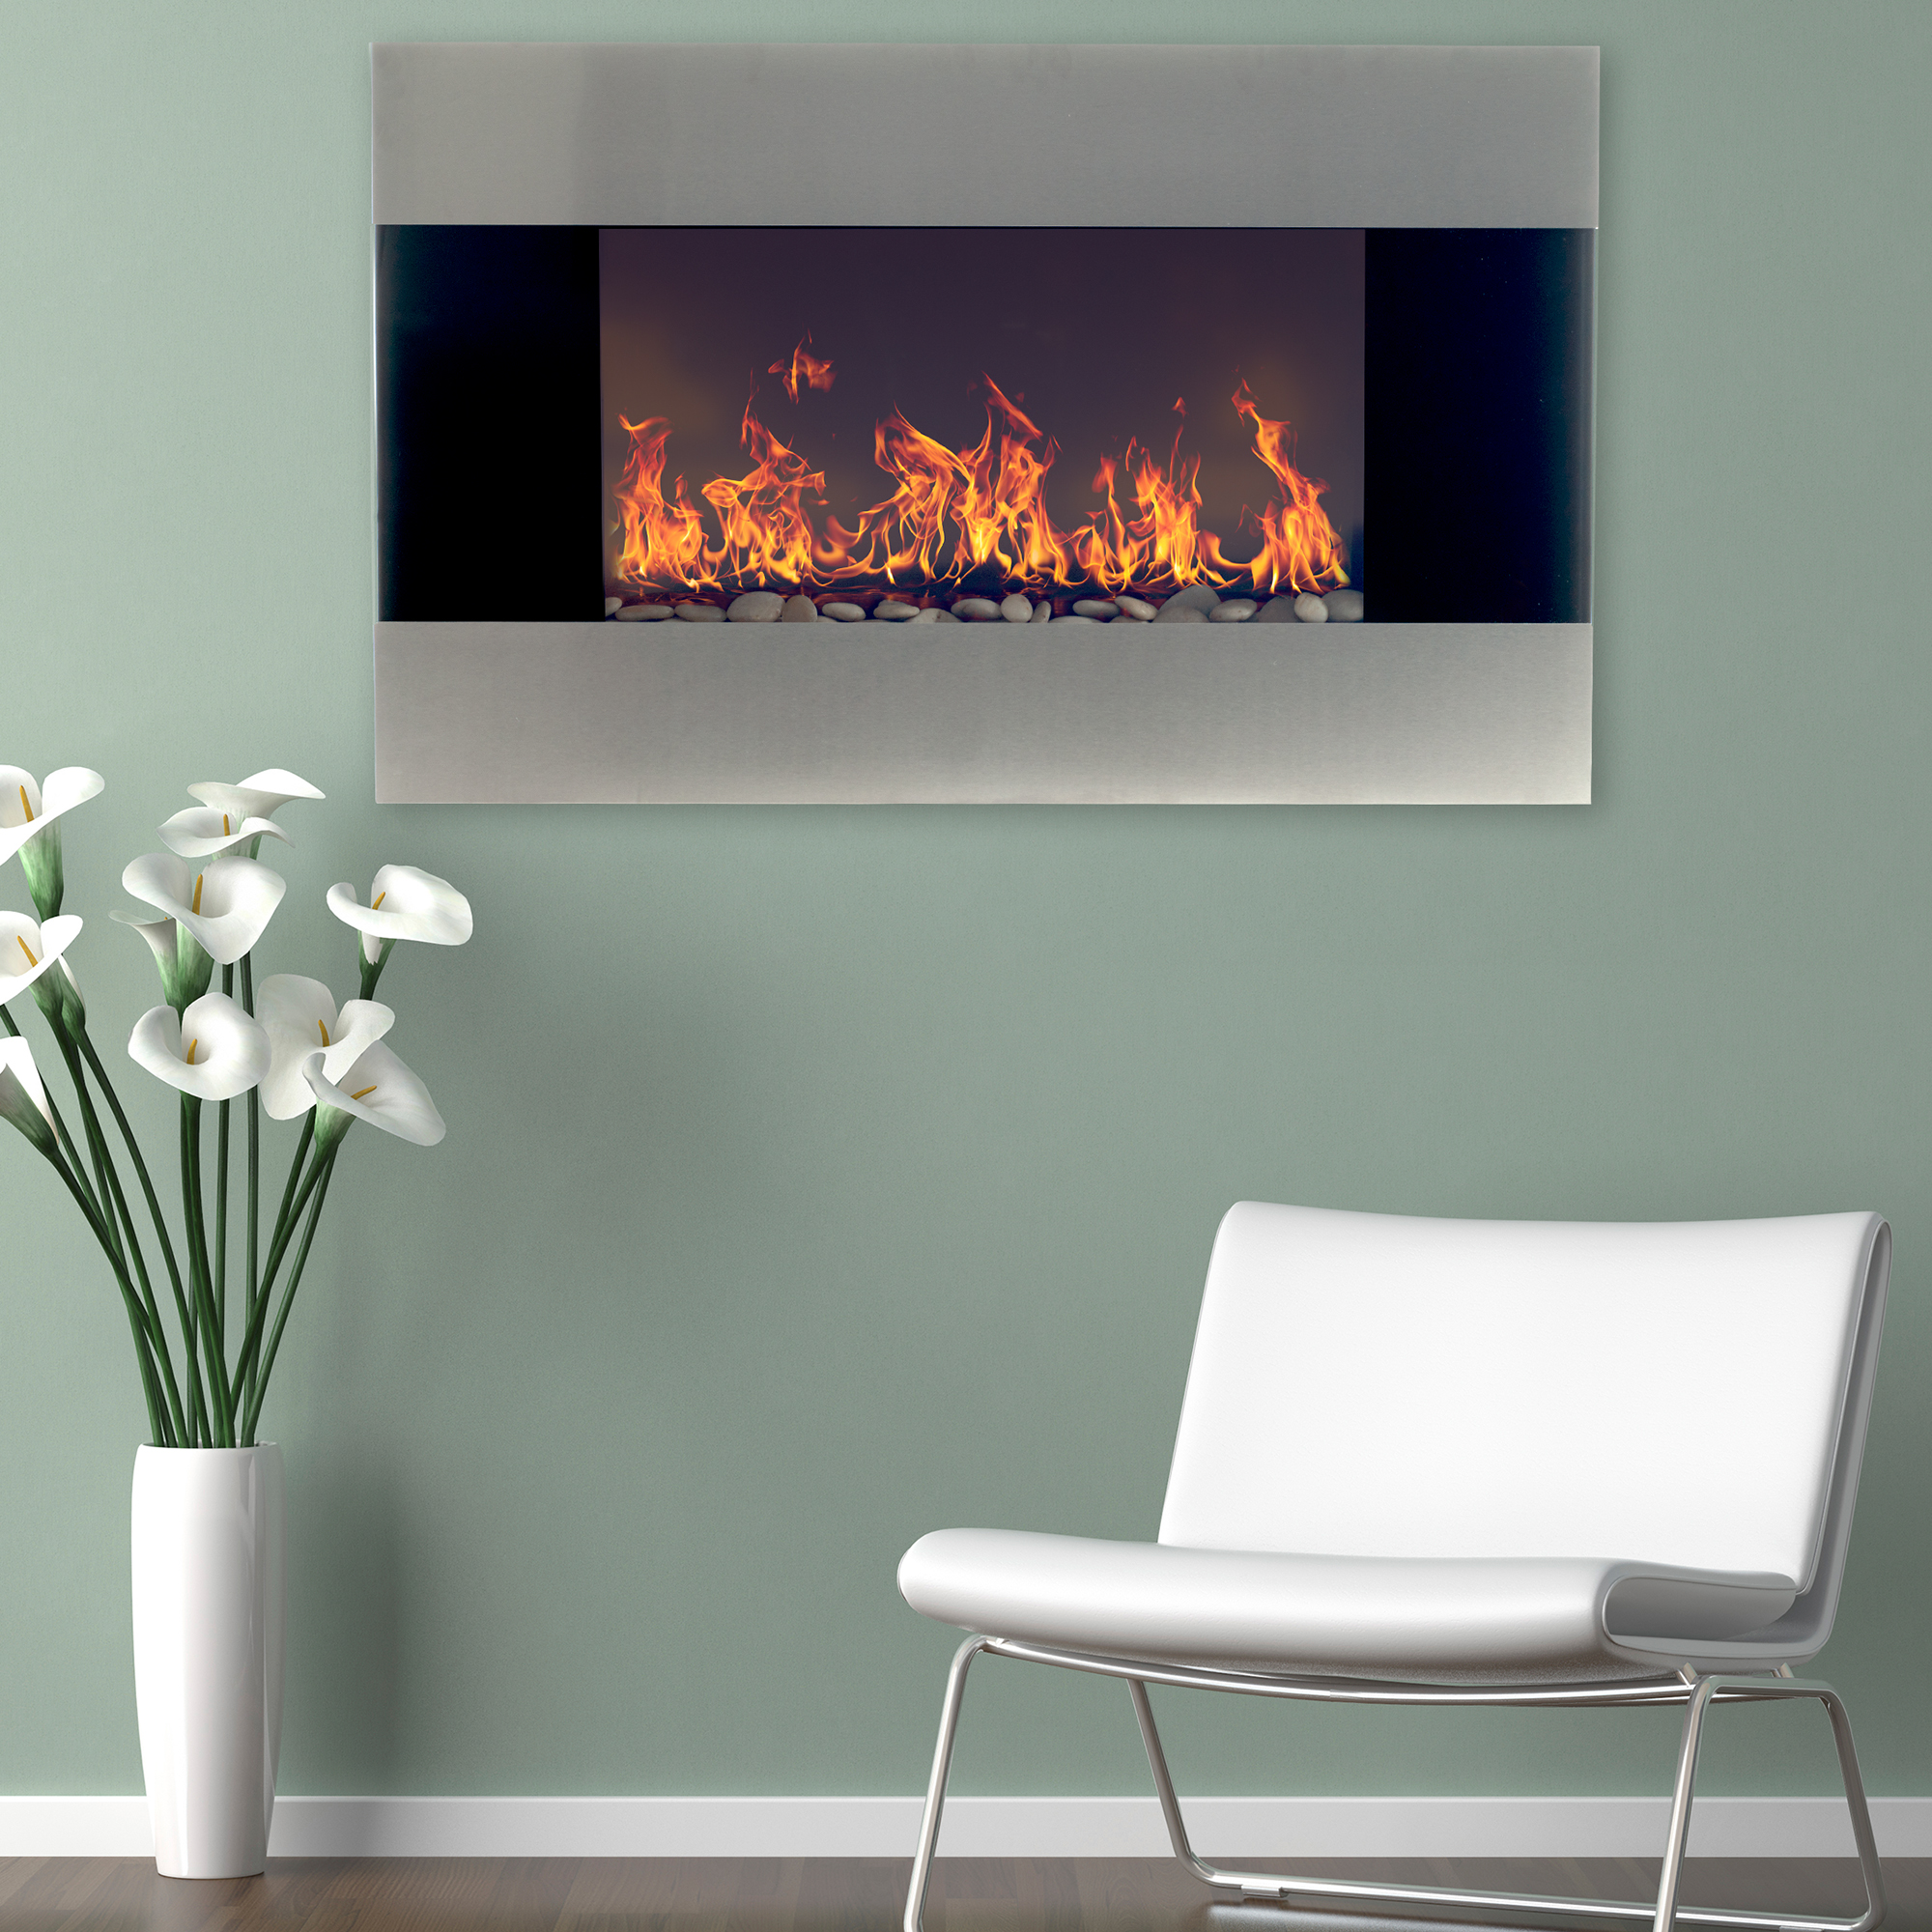 Northwest Stainless Steel 36 Inch Electric Wall Mounted Fireplace, Includes Remote